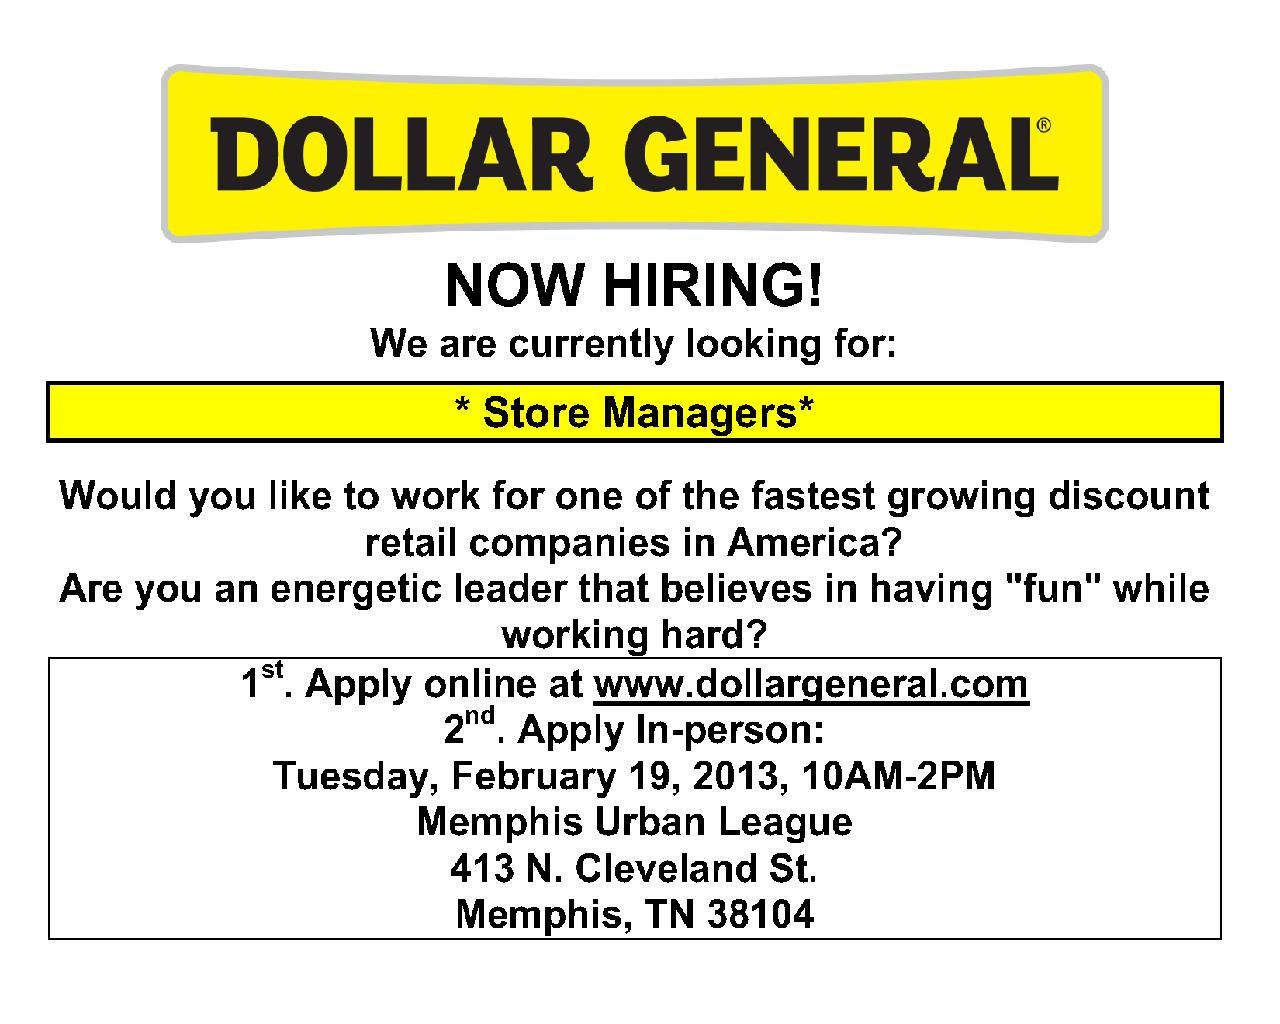 dollar general job fair memphis urban league 2 19 13 job